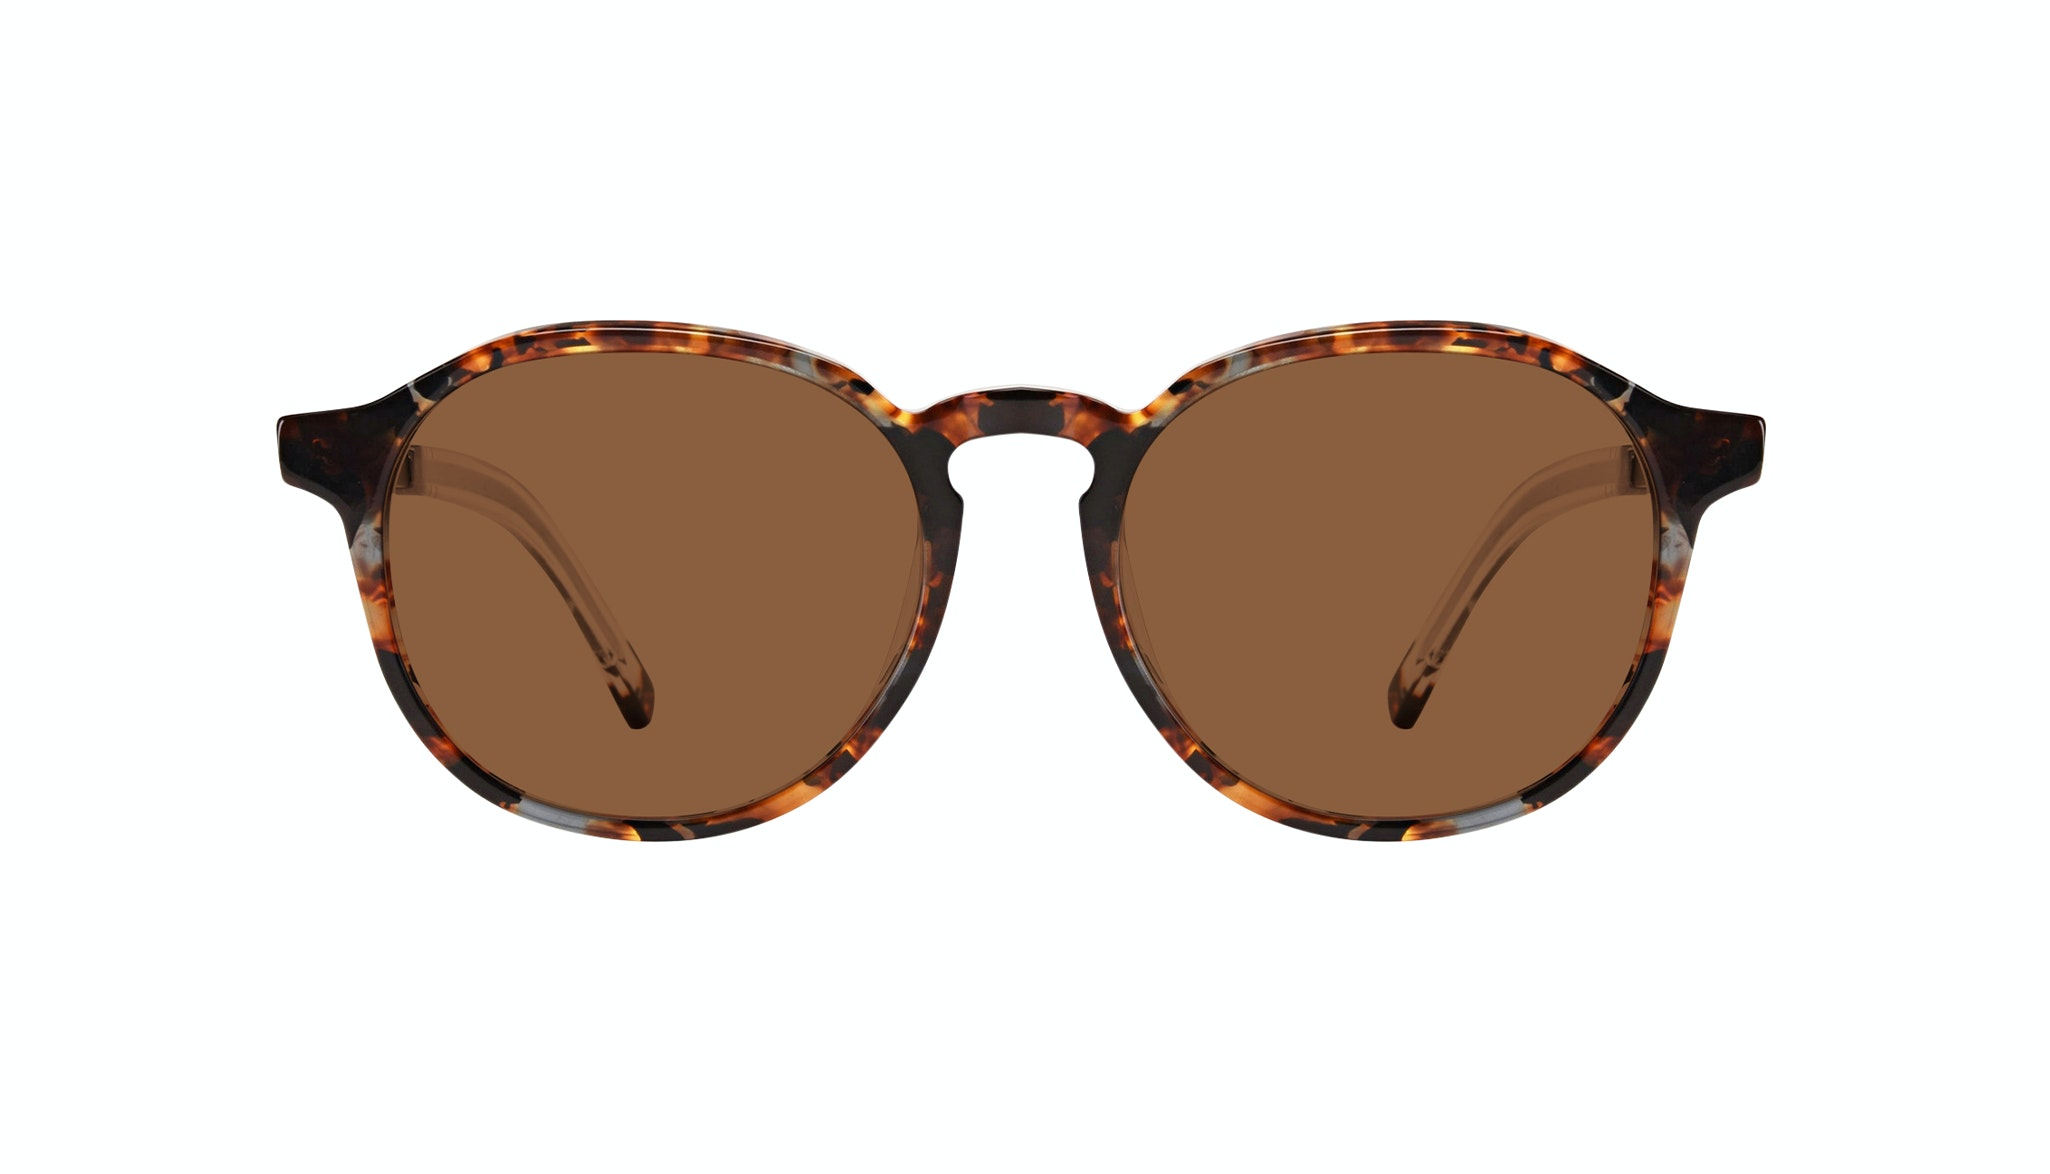 Affordable Fashion Glasses Round Sunglasses Men Prime XL Mahogany